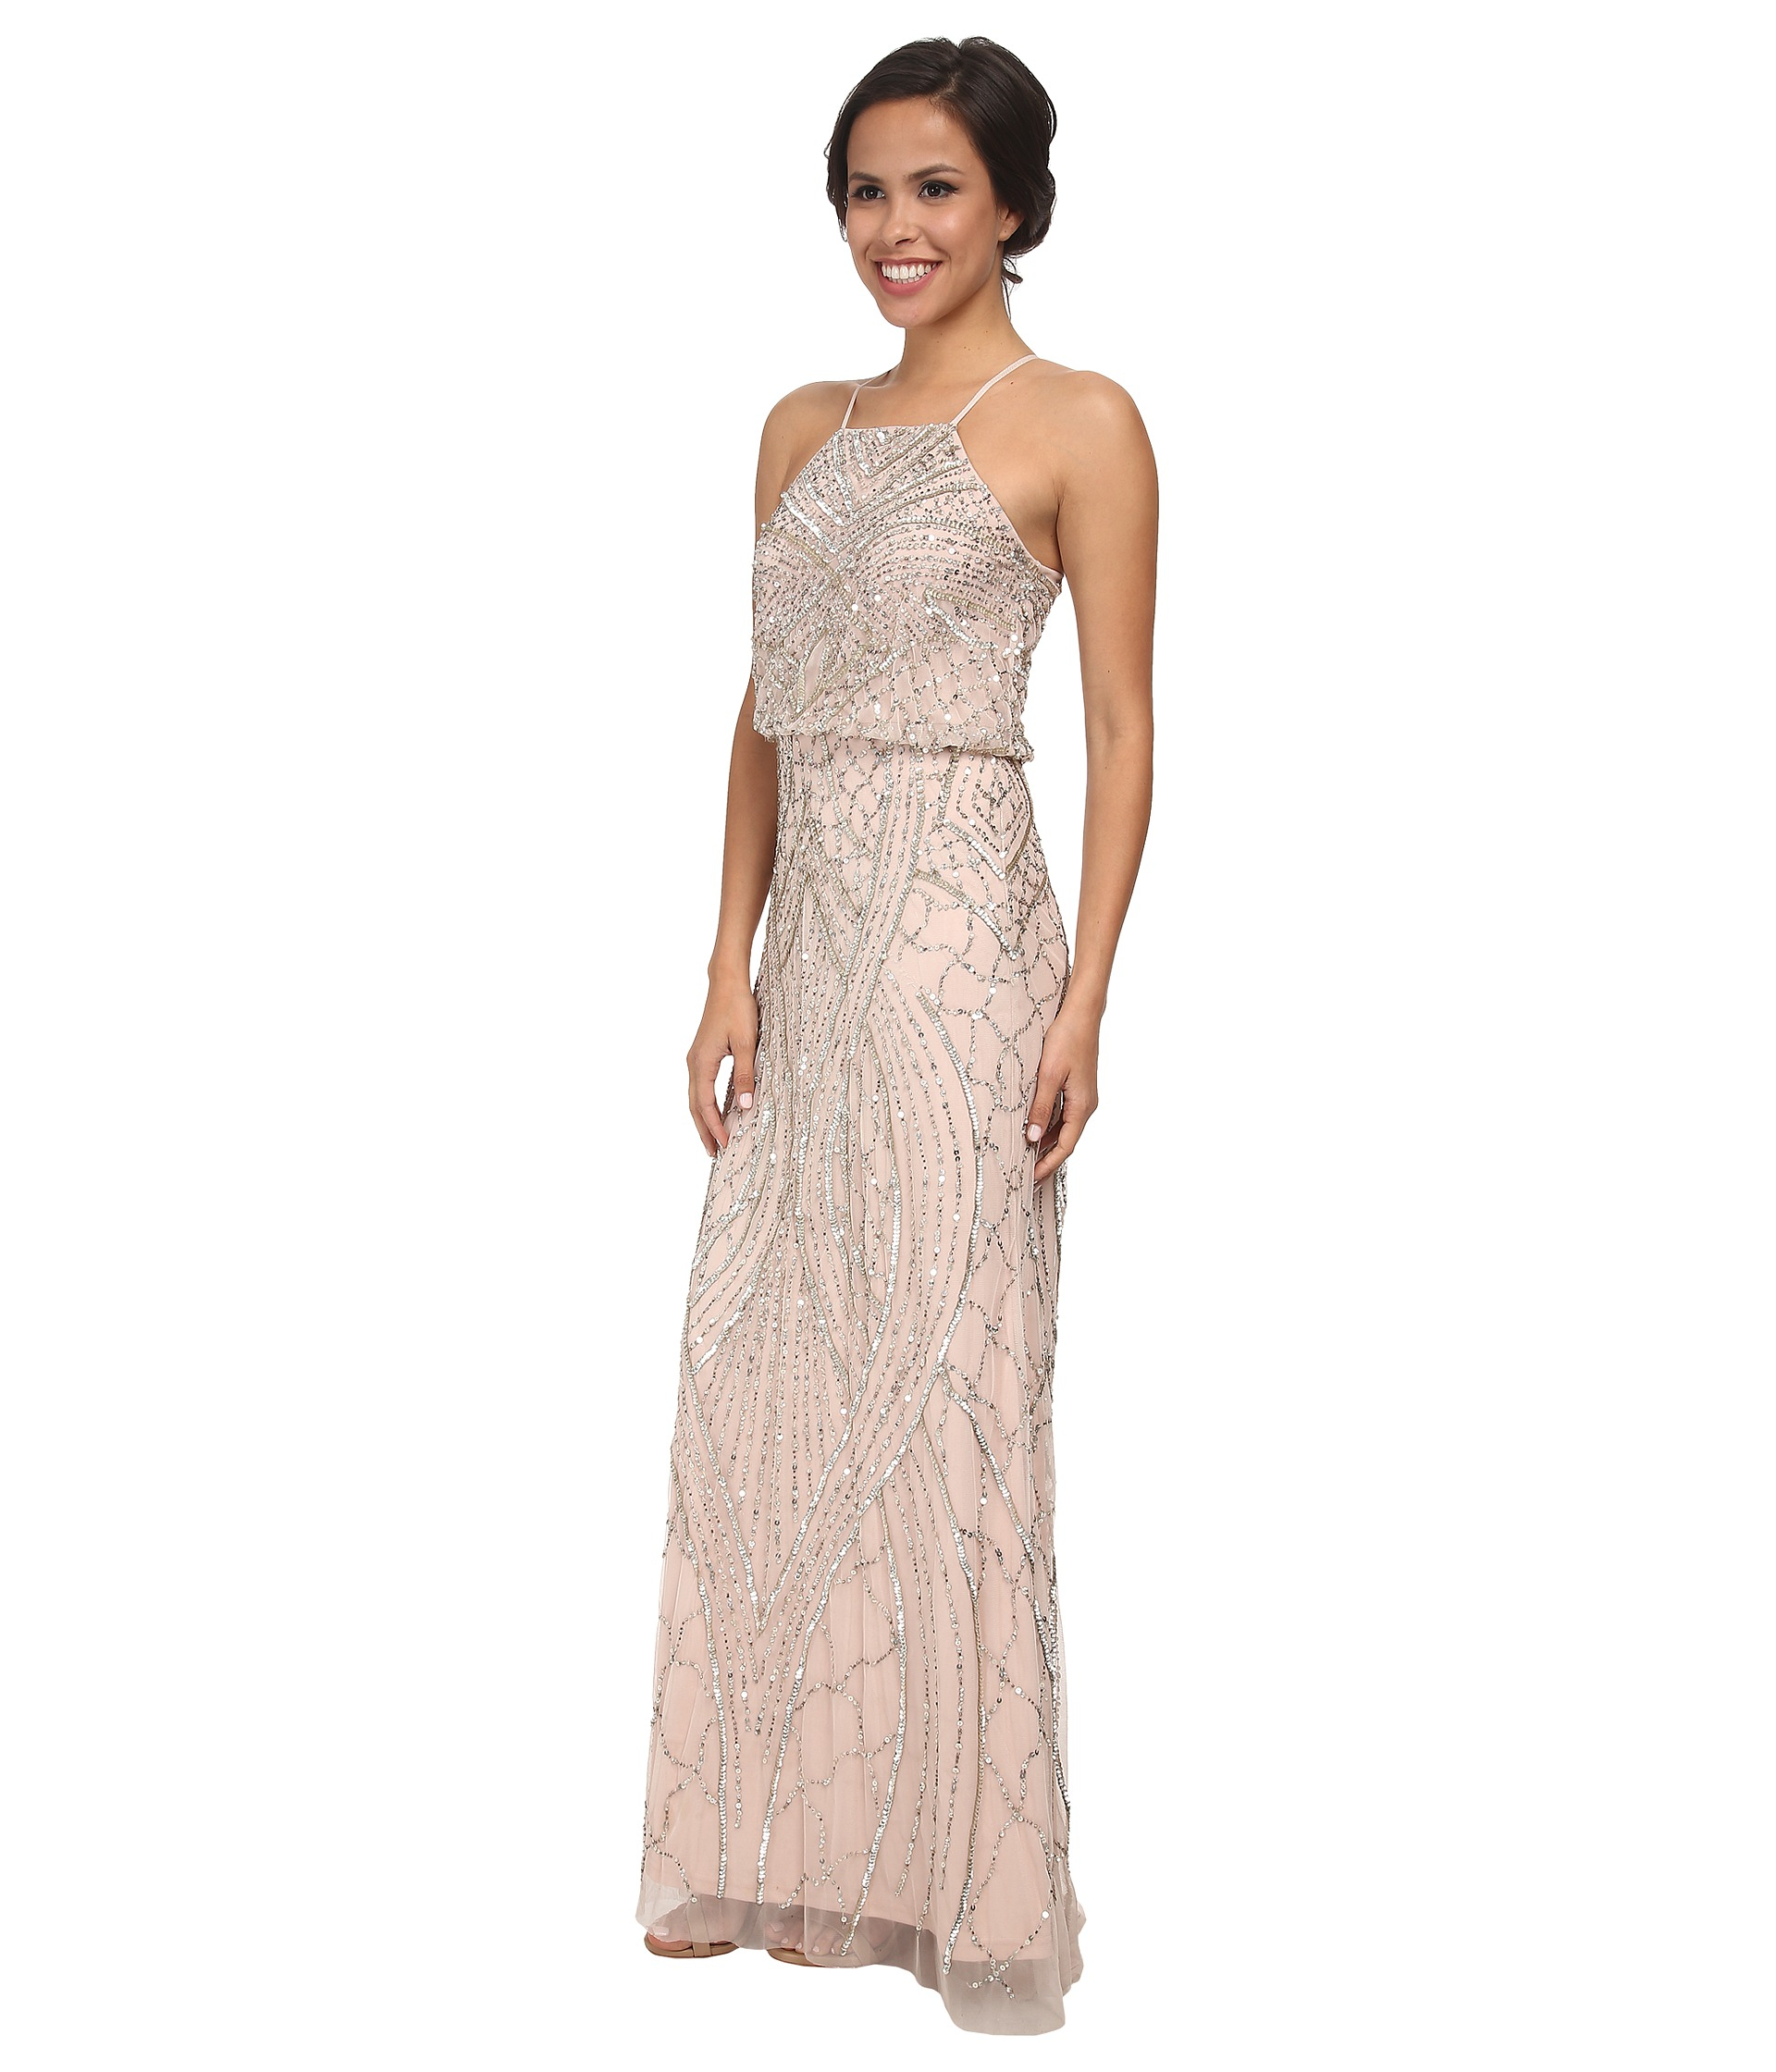 a1ca369230f7 Adrianna Papell Halter Fully Beaded Gown in Pink - Lyst